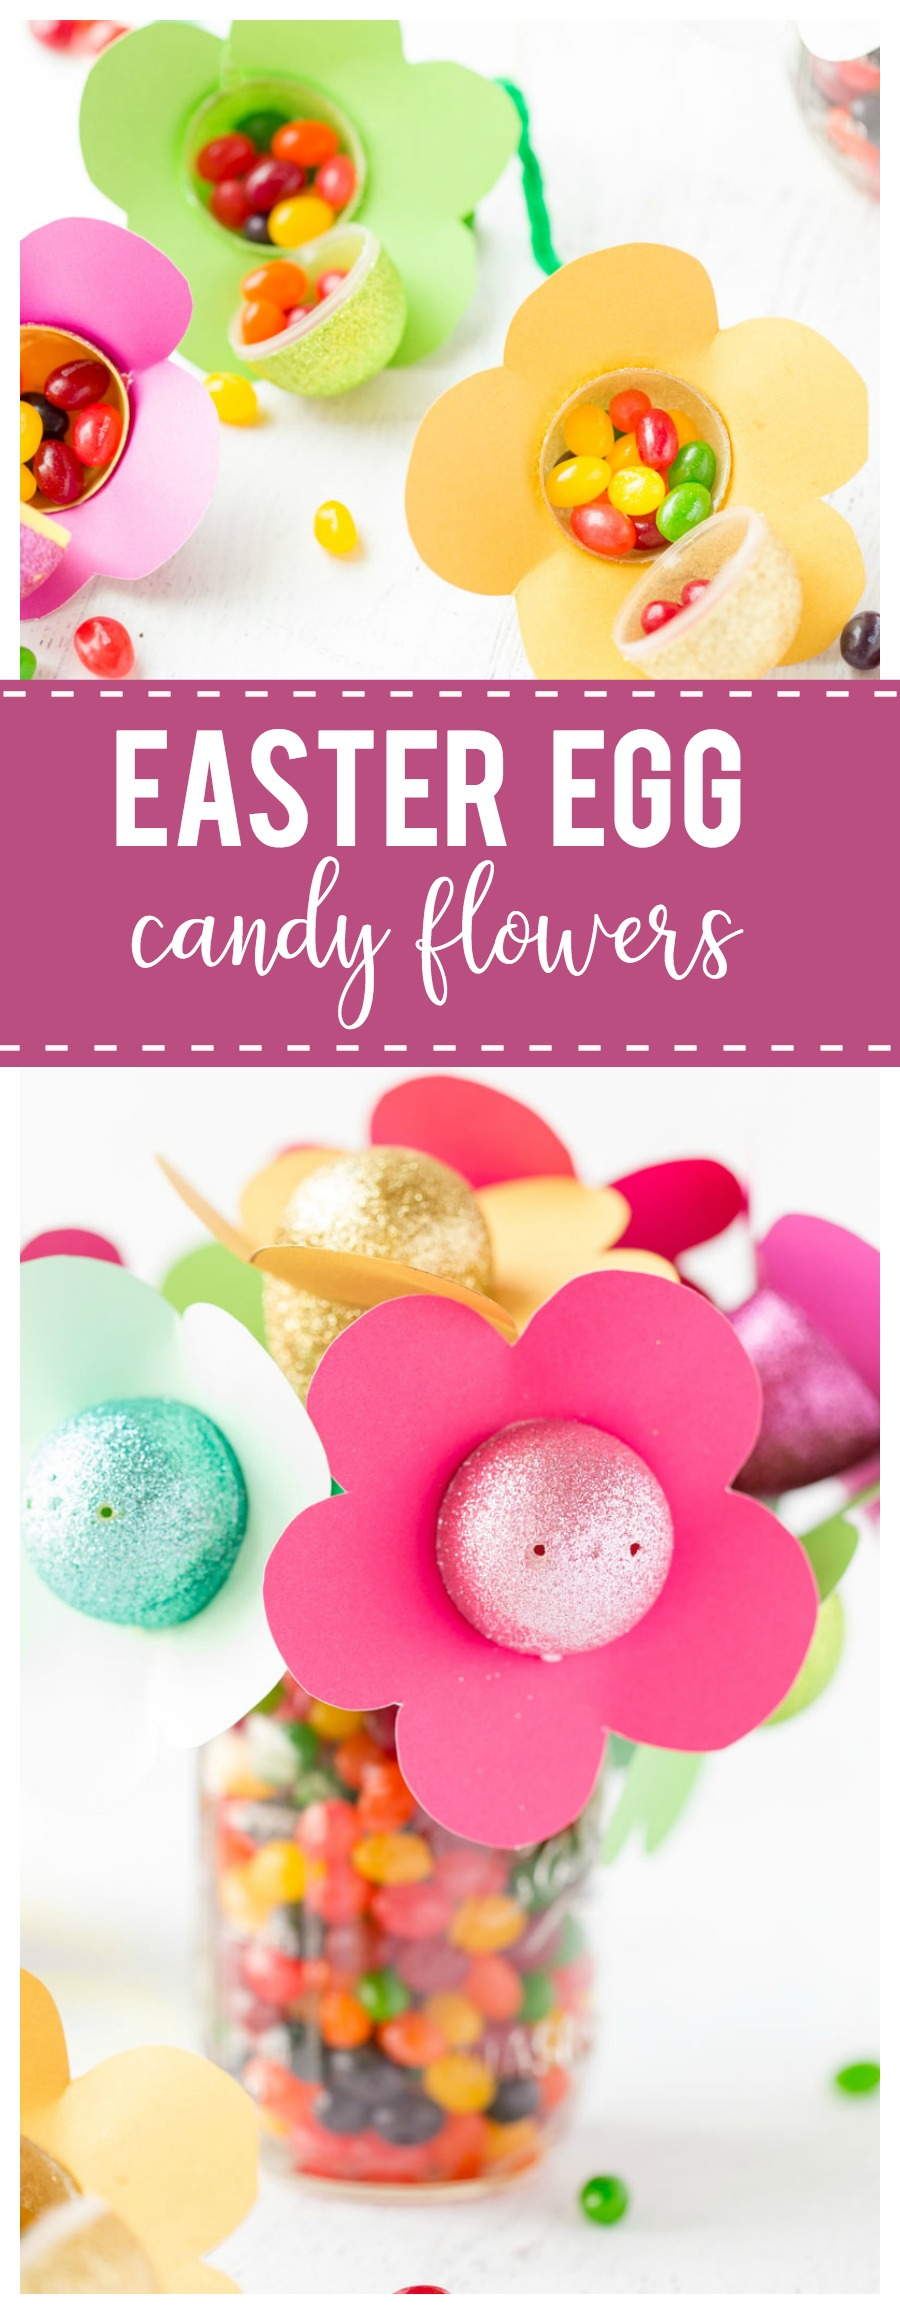 Easter Egg Candy Flowers: a pretty and yummy decor idea that is perfectly festive for your Easter dinner table.